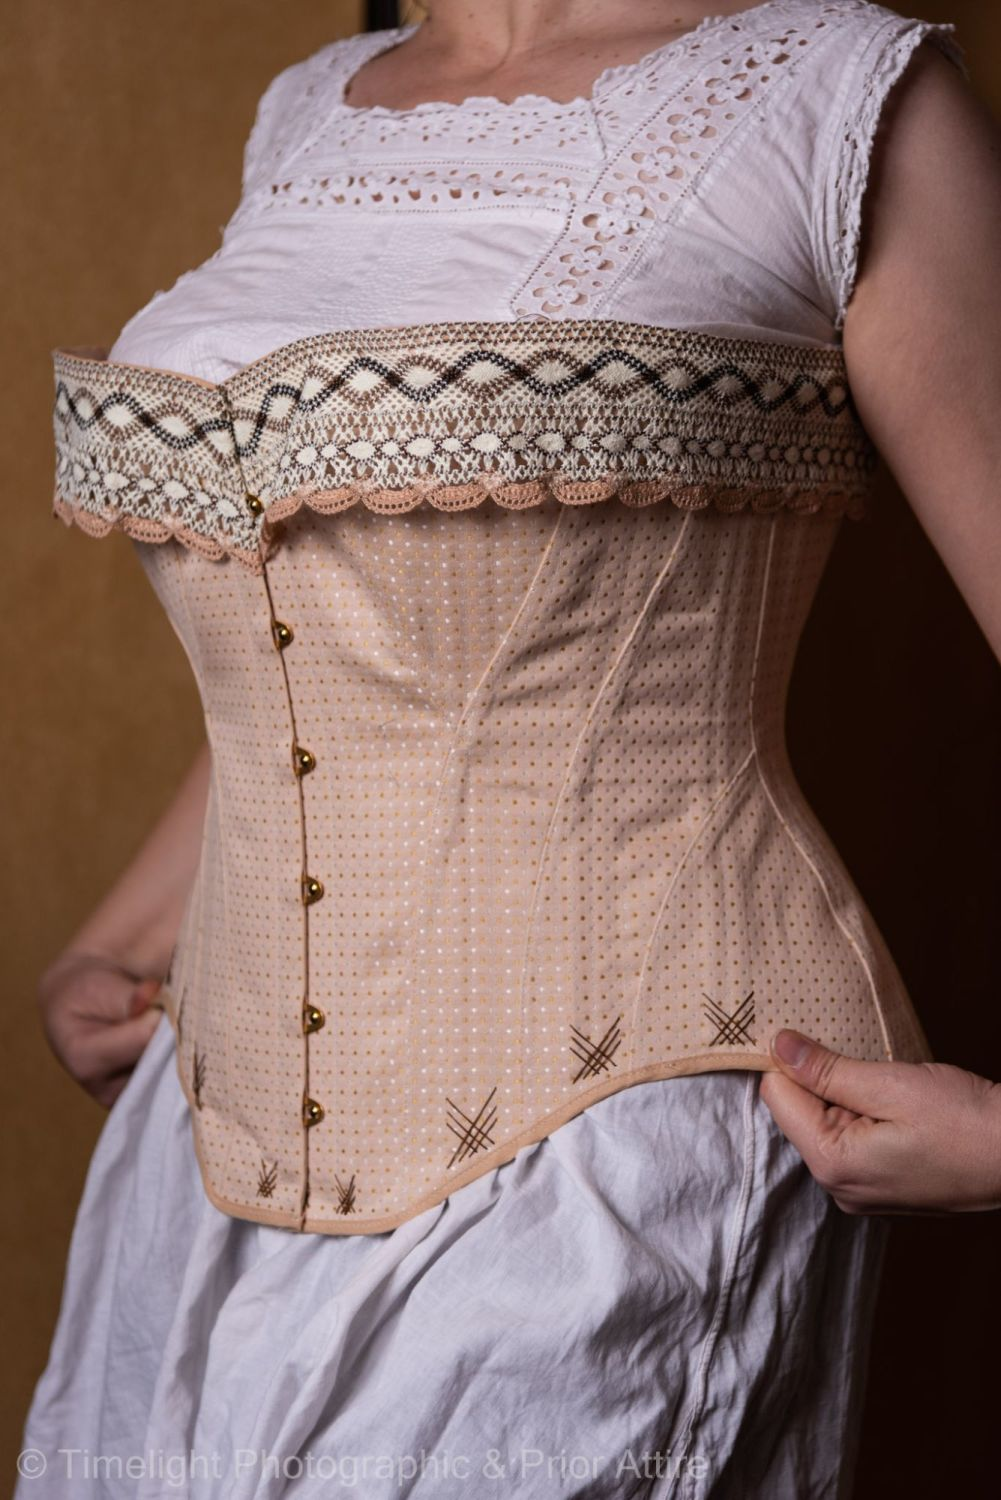 Late Victorian, early Edwardian corset  size 16-18